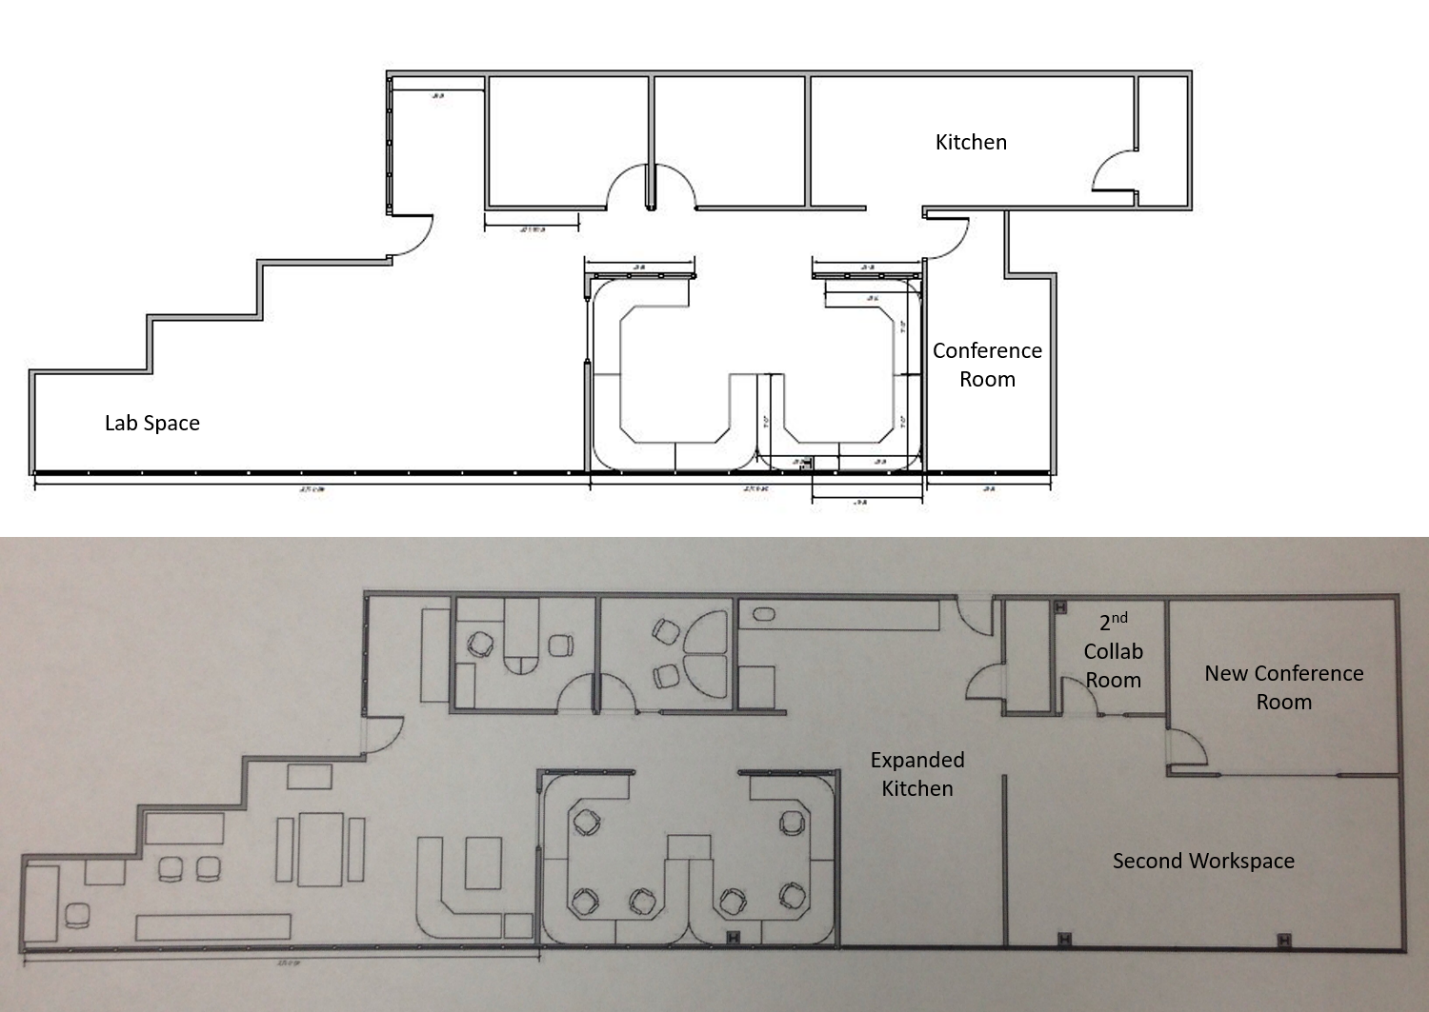 Before and after layouts of the Houston Office.